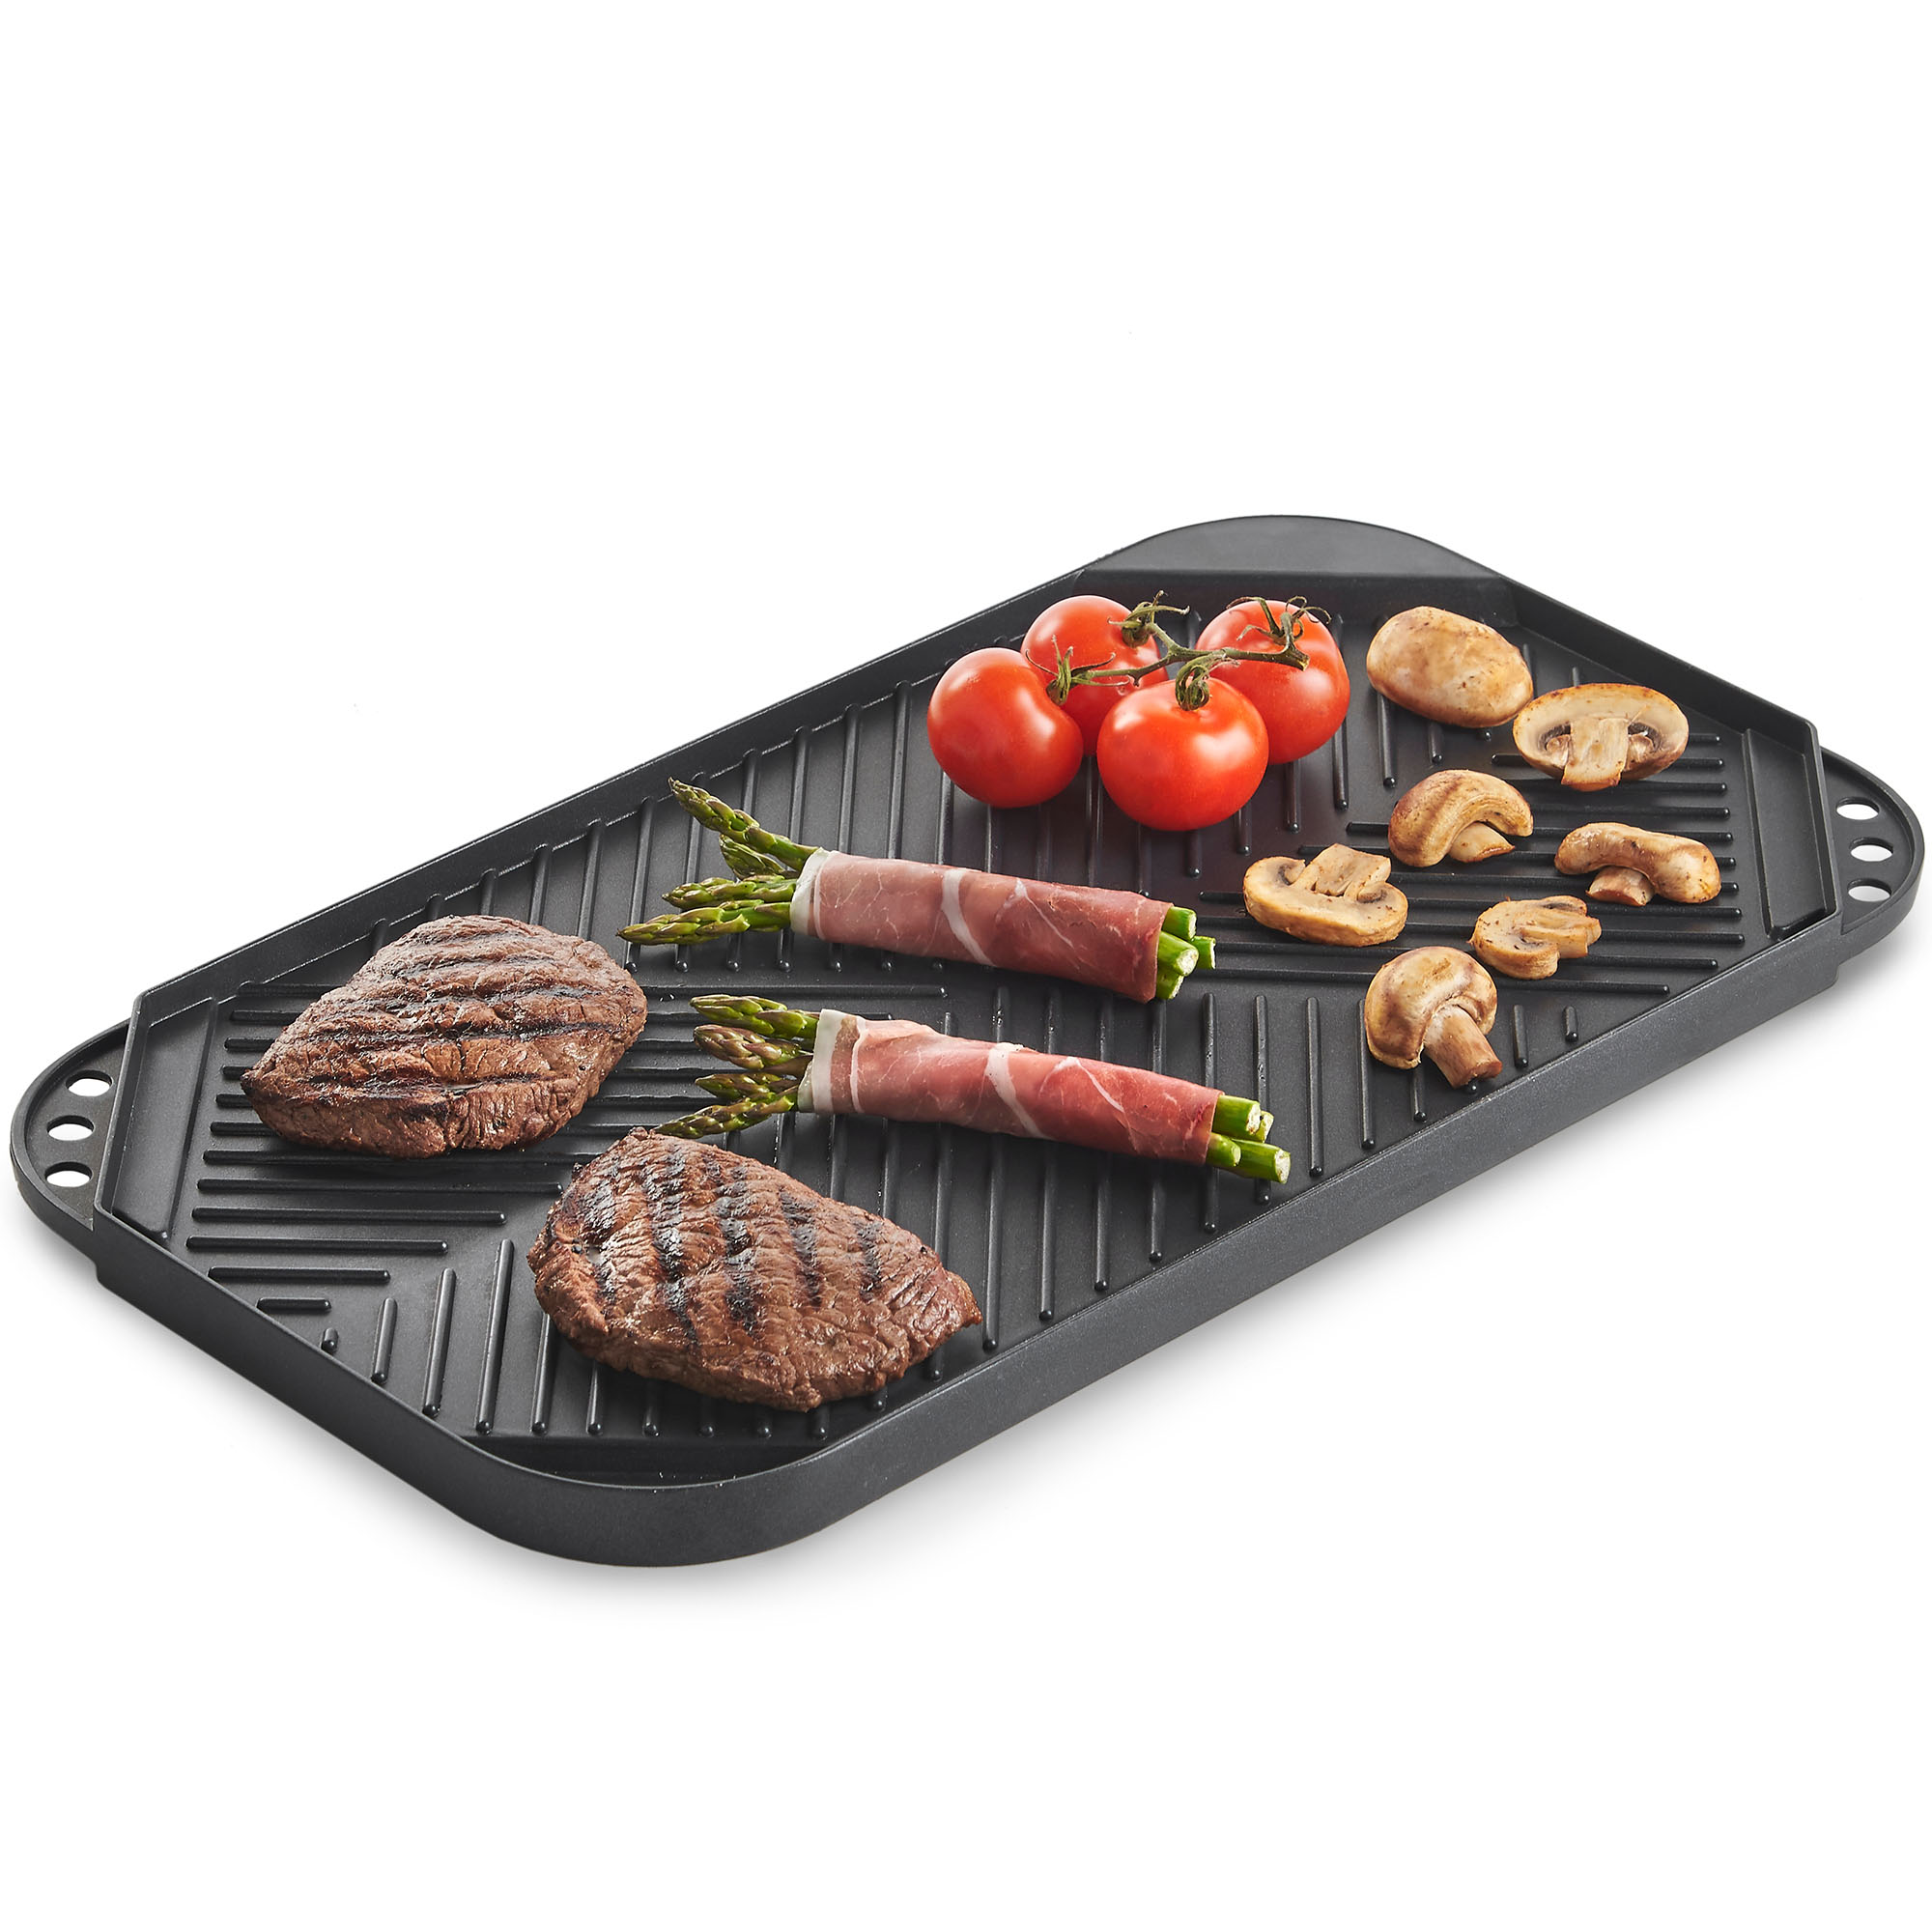 Vonshef Reversible Crepiere Plate Pan Aluminium Double Sided Grill